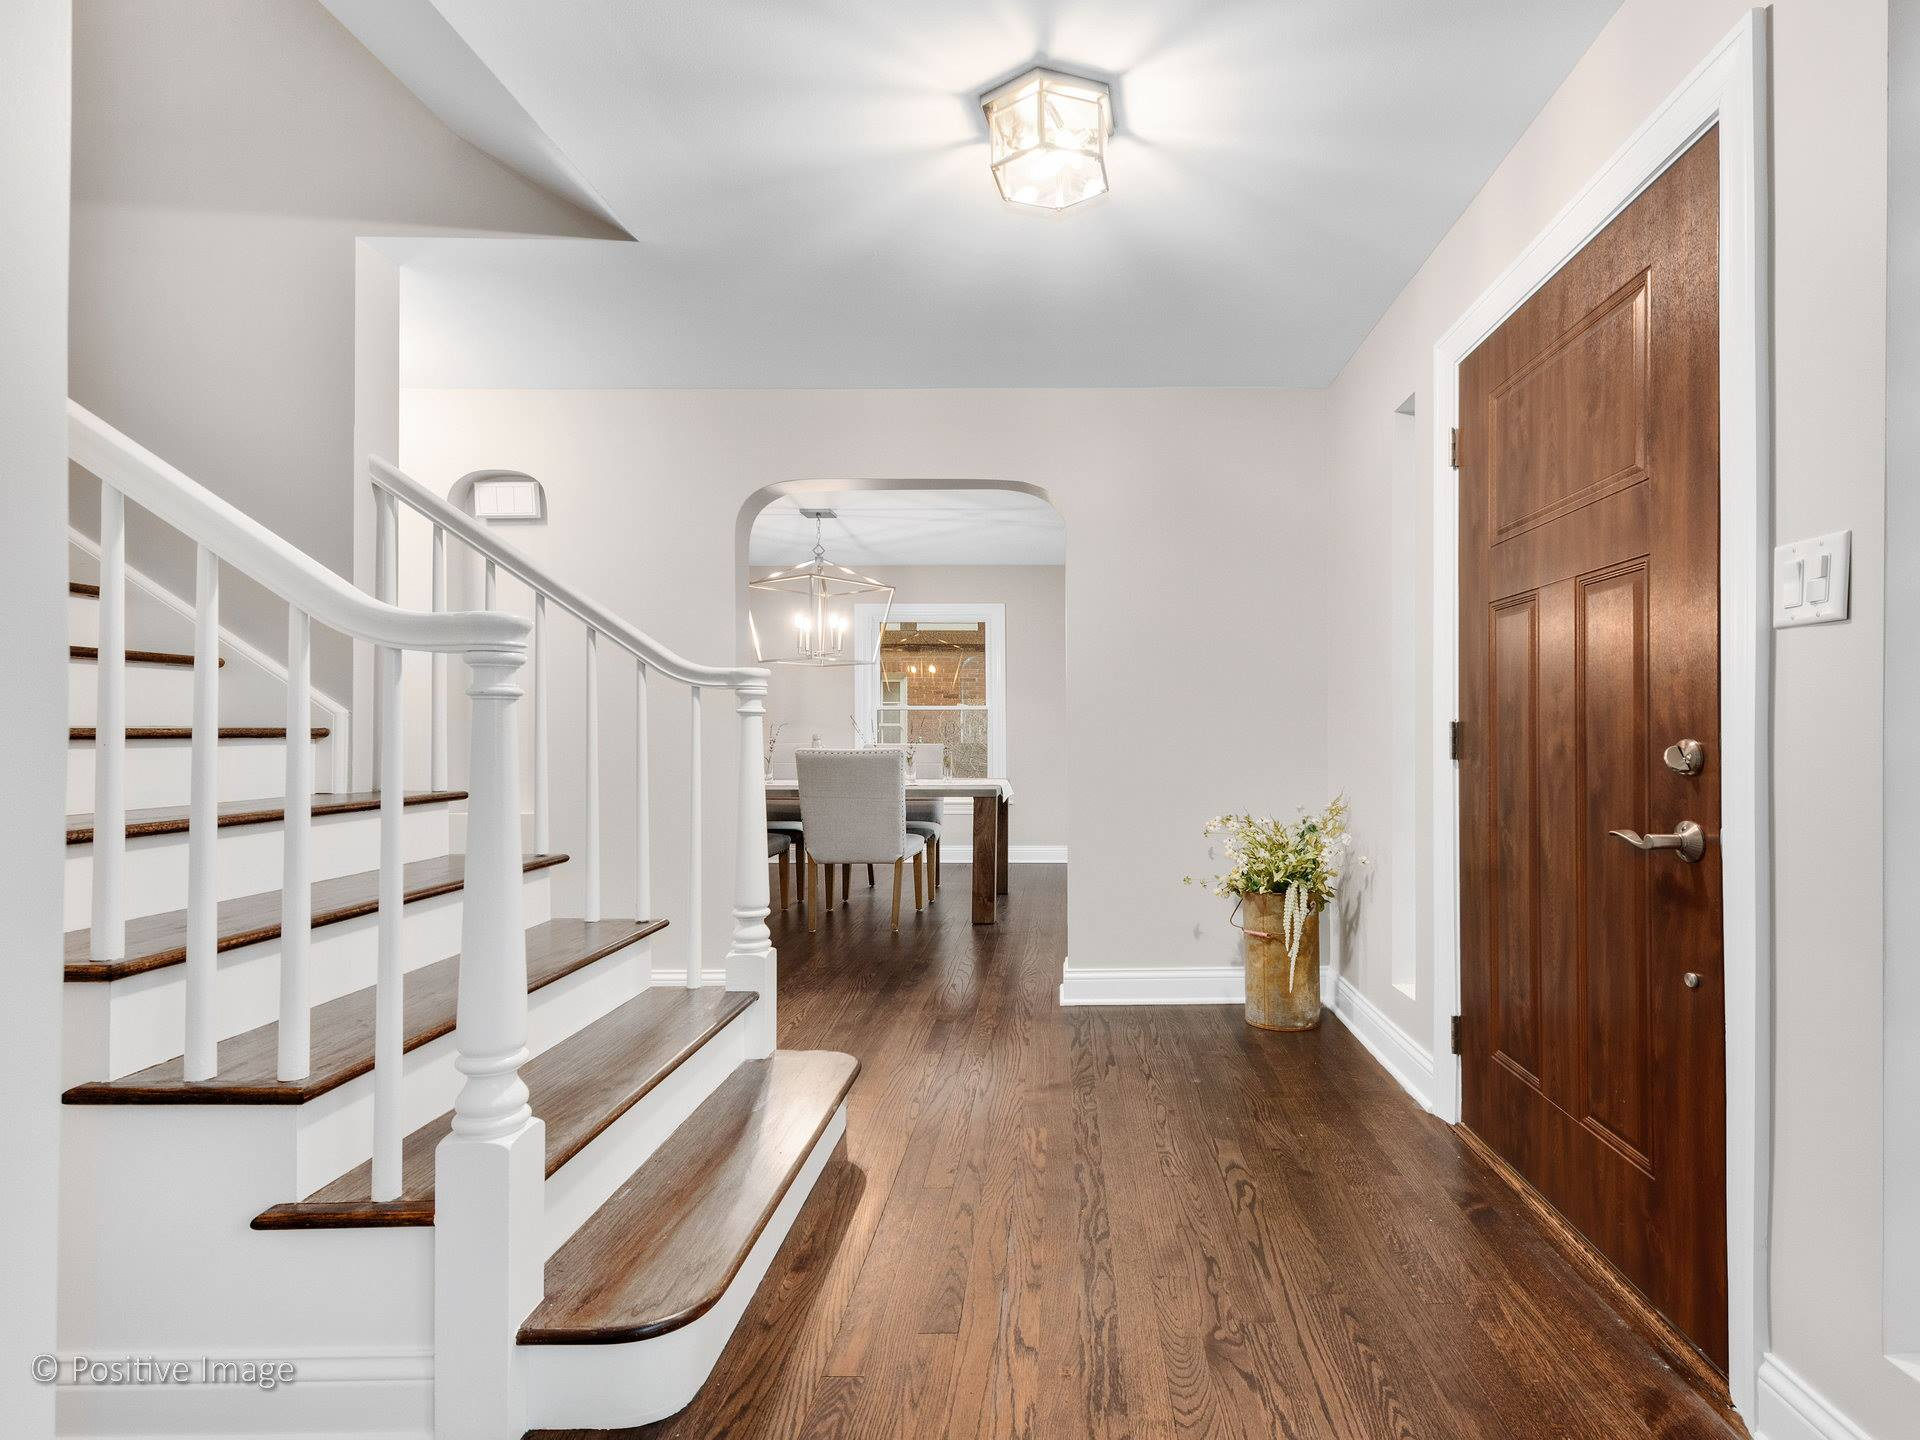 Elmhurst Home Remodel | Done by Kure Construction Inc.